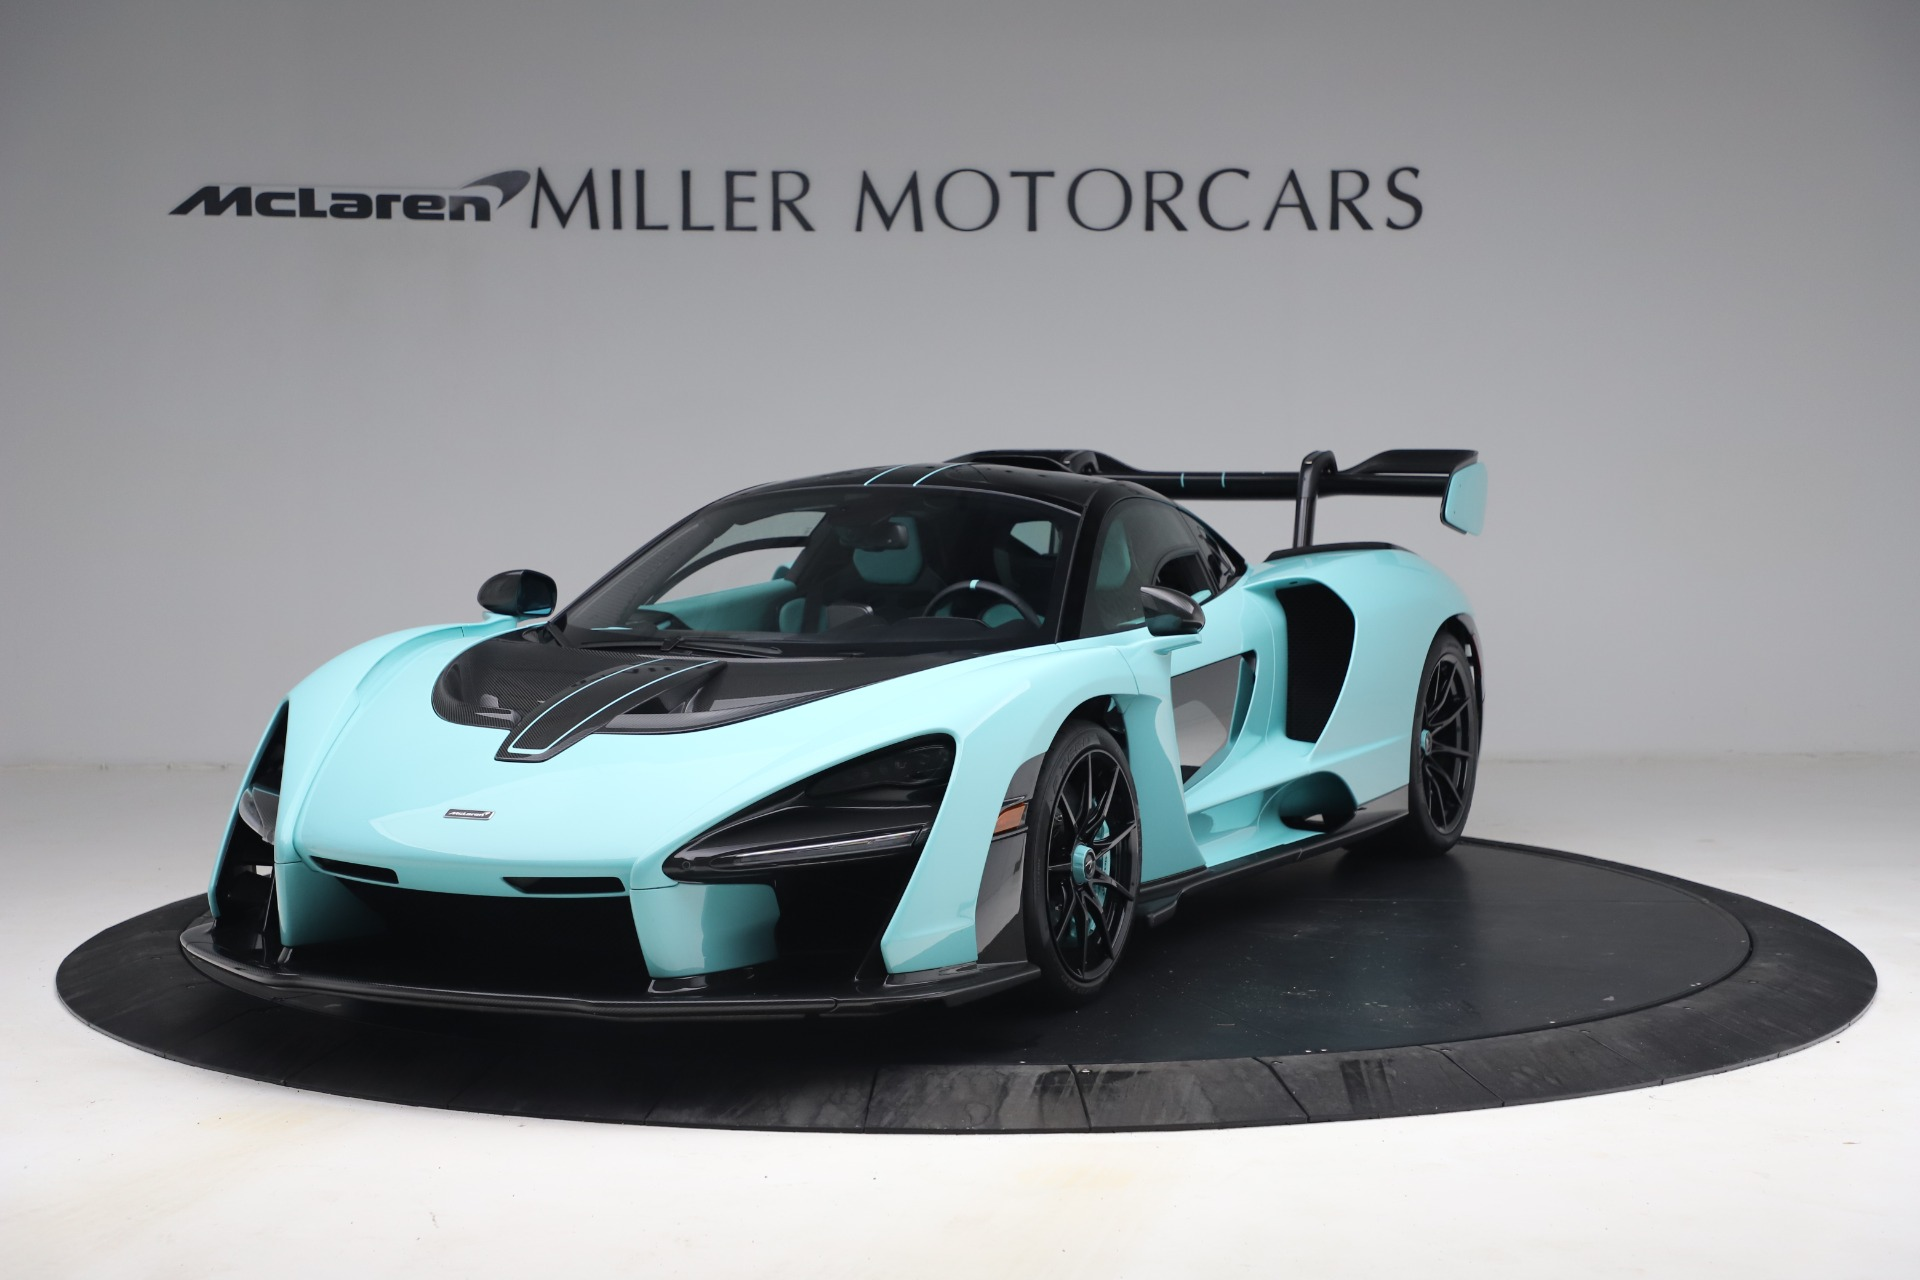 Used 2019 McLaren Senna for sale Sold at Bentley Greenwich in Greenwich CT 06830 1